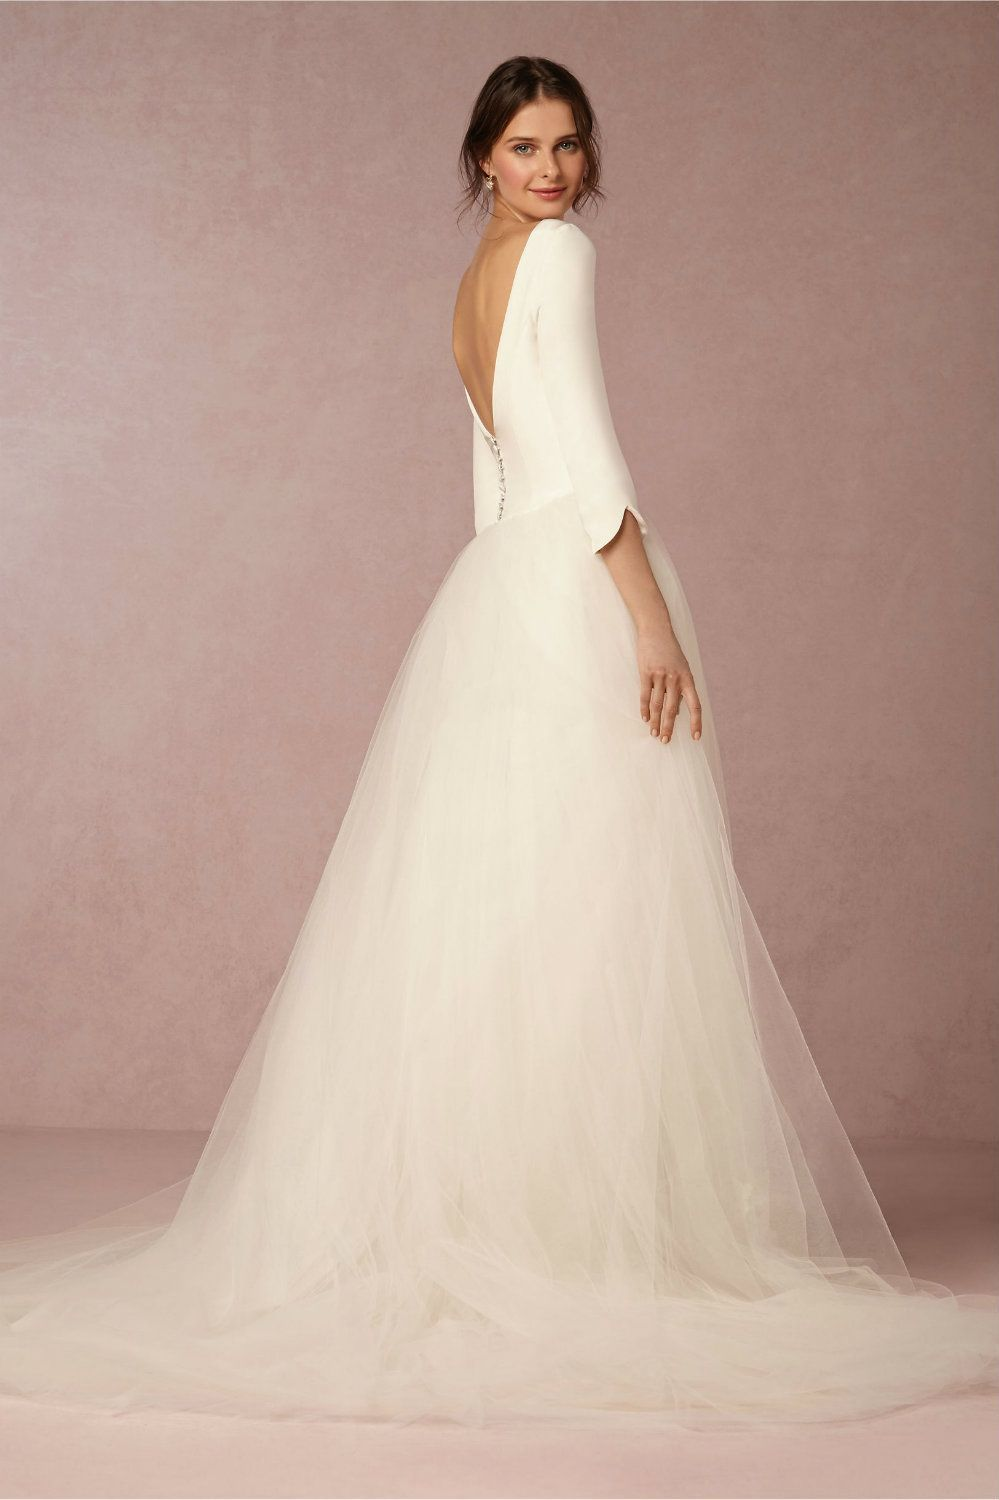 Winter wedding dresses beautiful bridal gowns for your winter